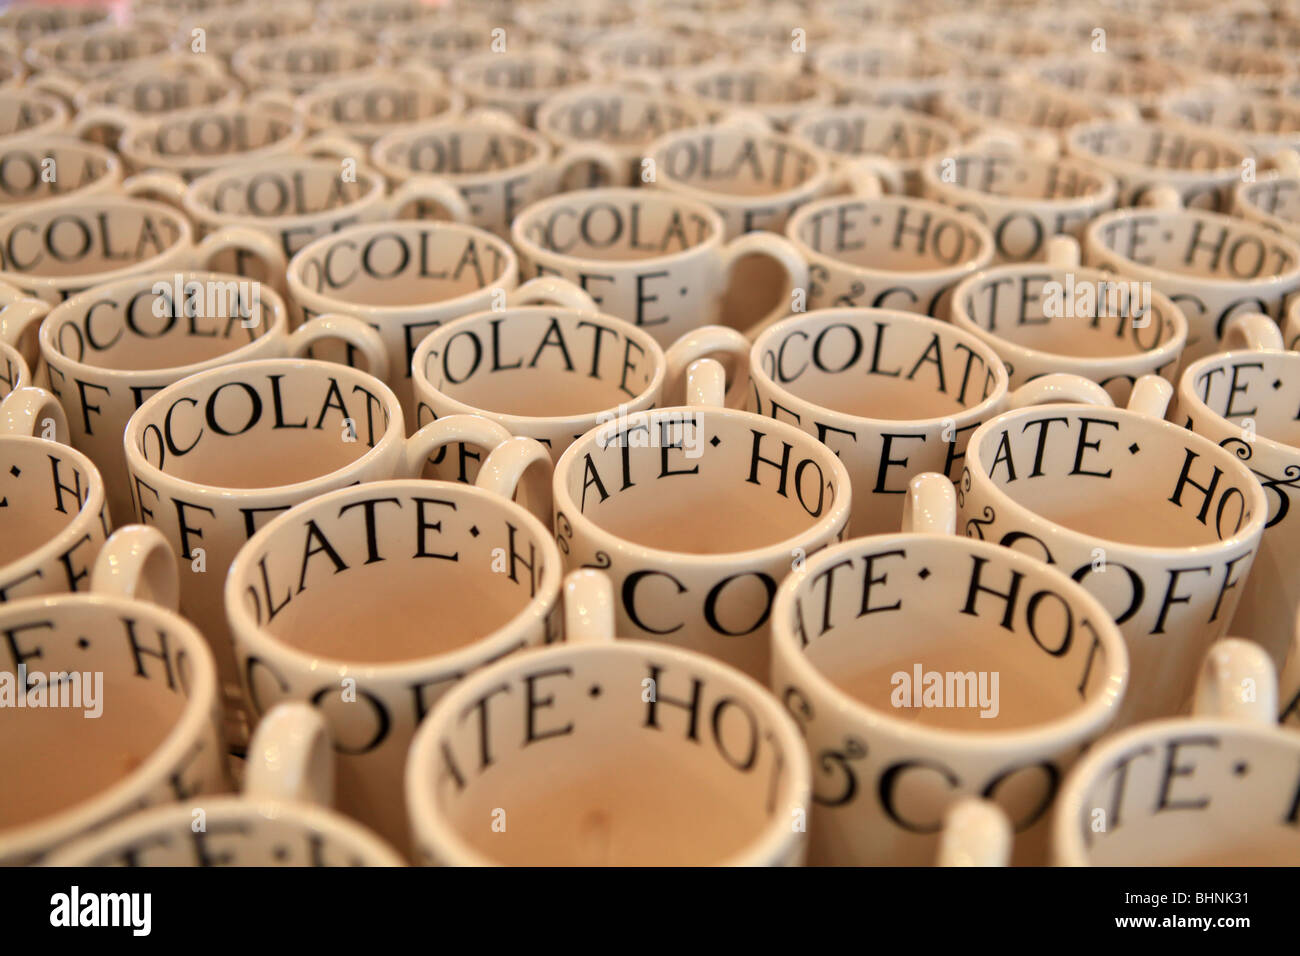 Emma Bridgewater, pottery, Stoke on Trent, Stock Photo